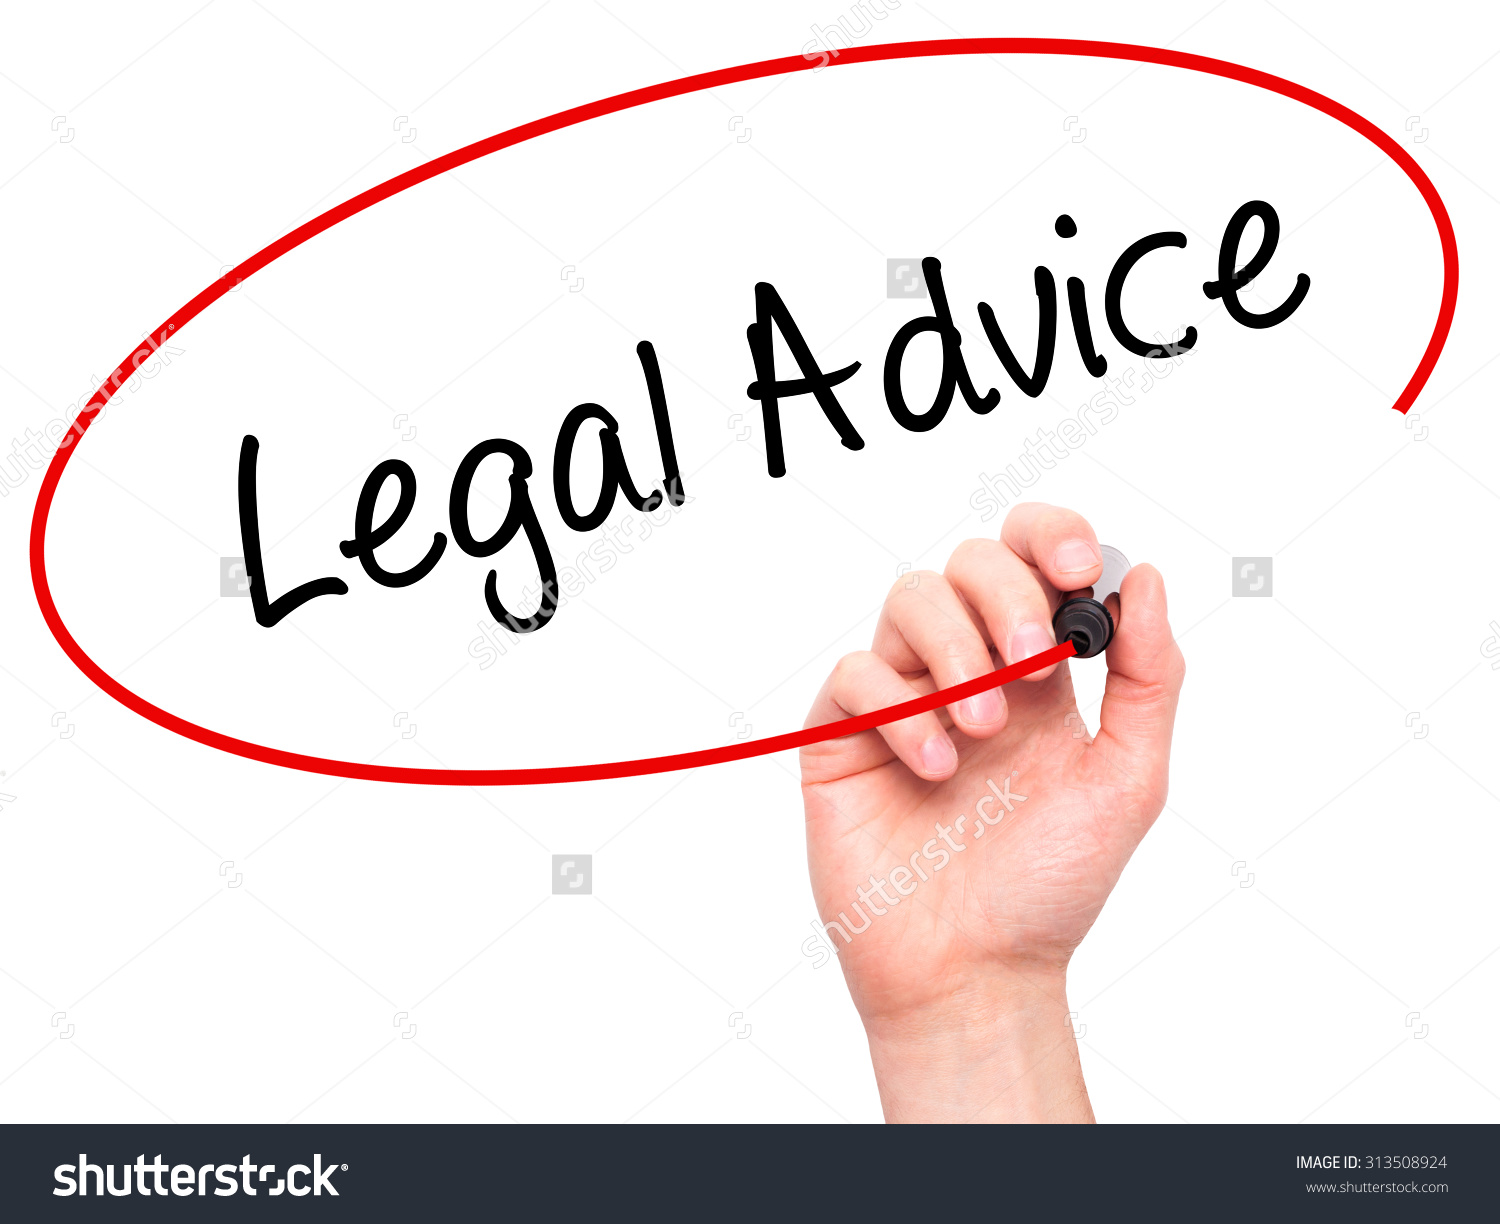 Writing legal advice